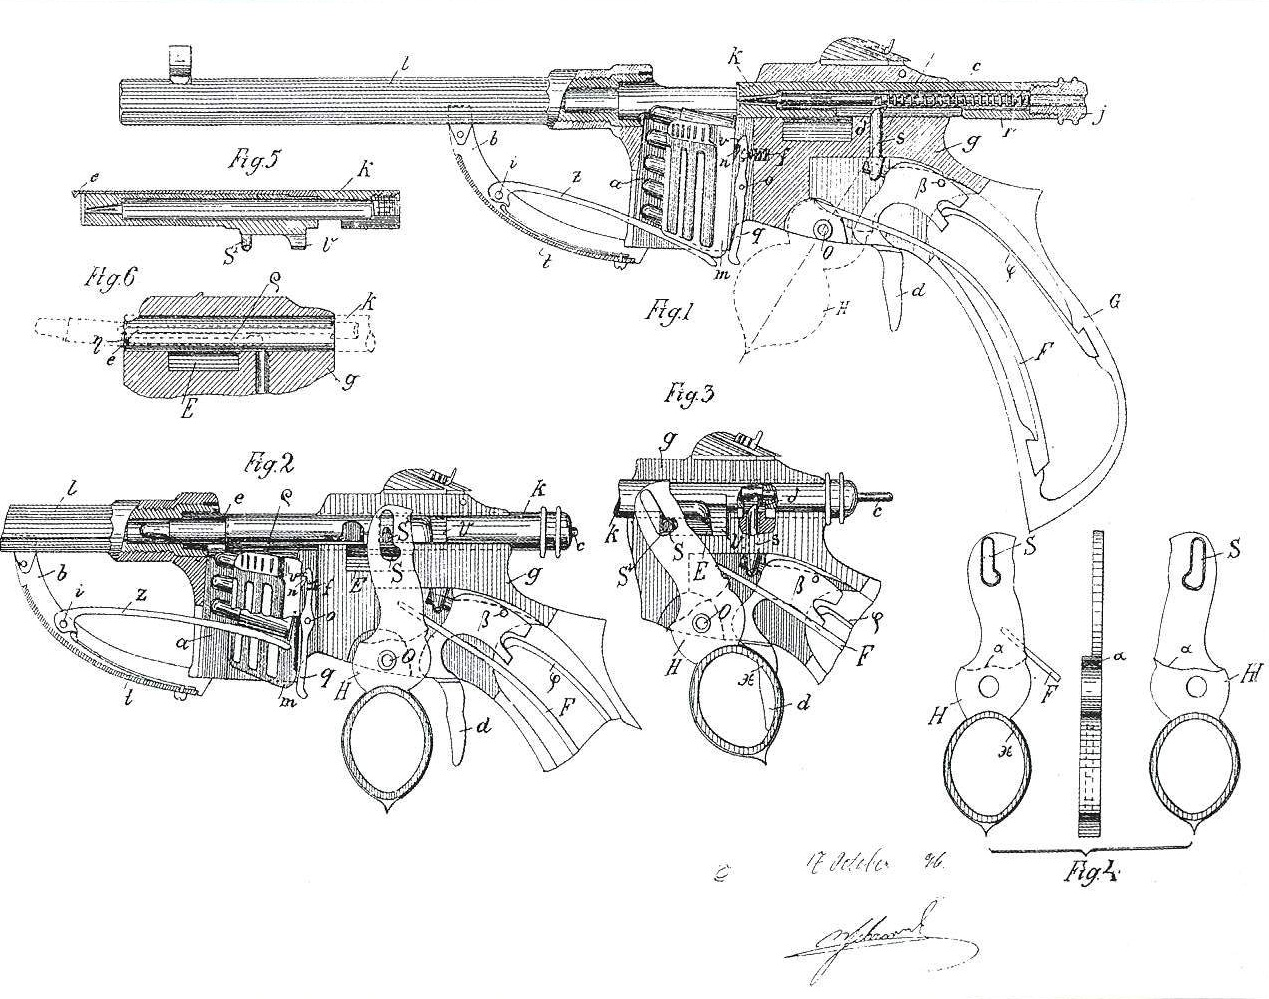 Bittner repeating pistol patent